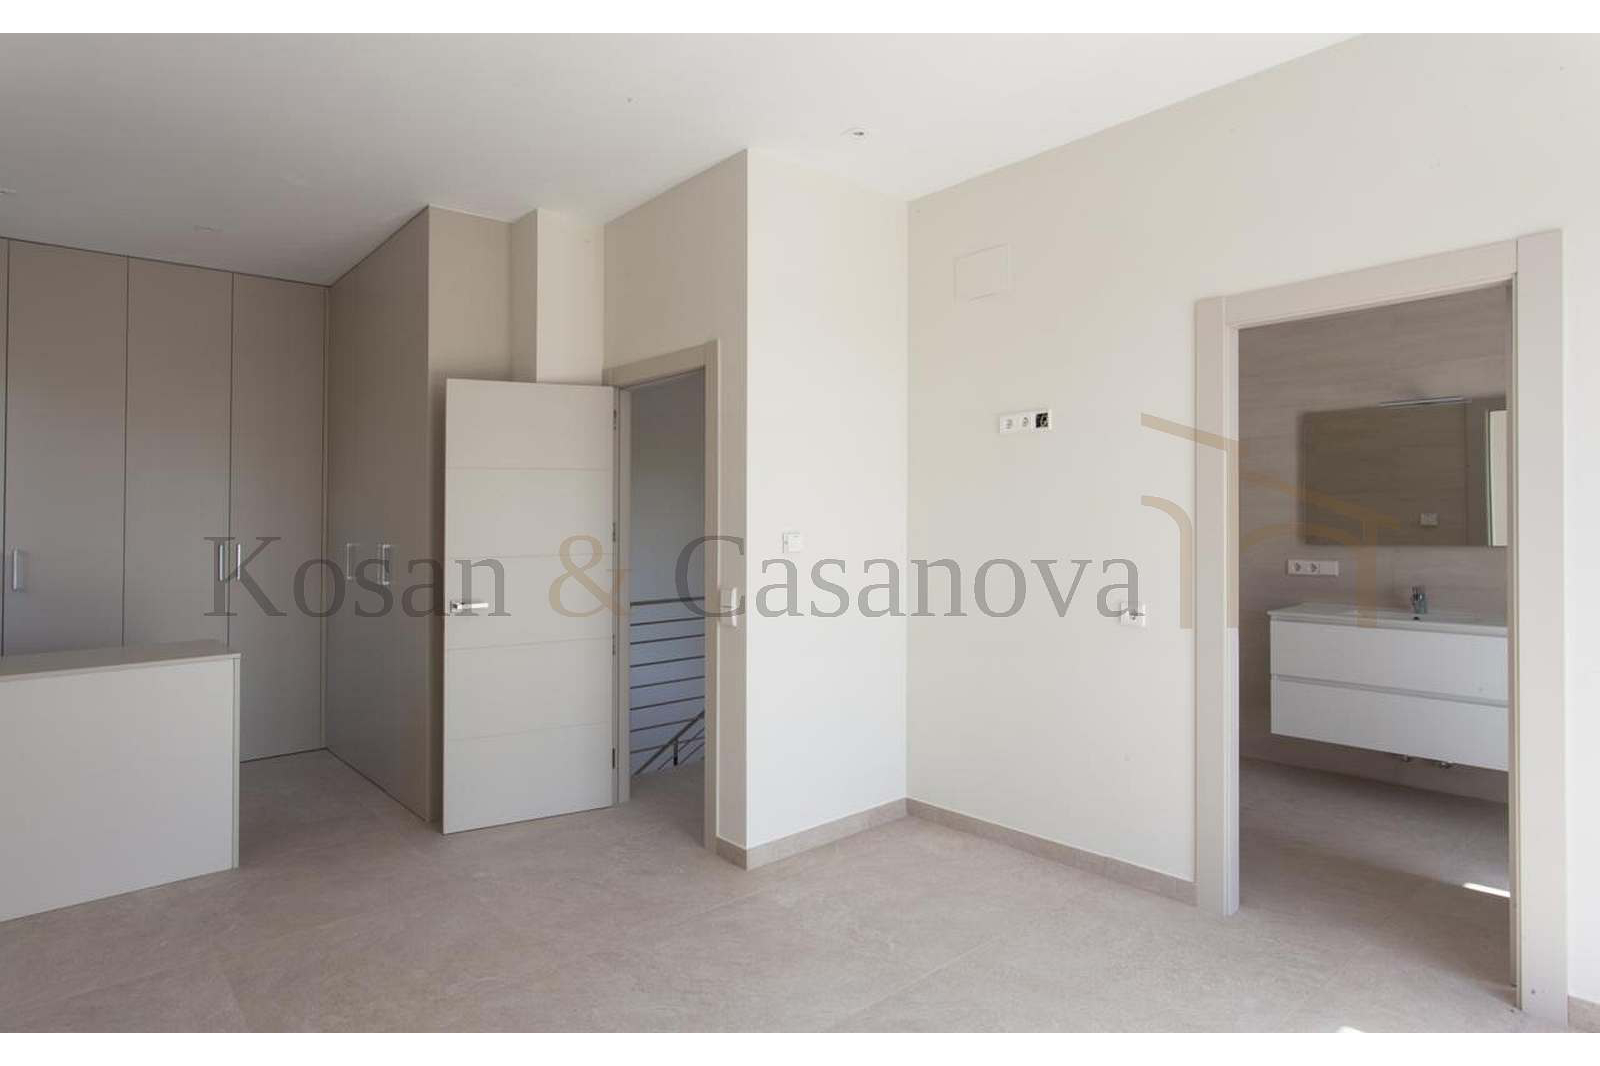 Moraira / Teulada- A contemporary Villa, bright and airy, with openspaces, ideal for modern living pic 9